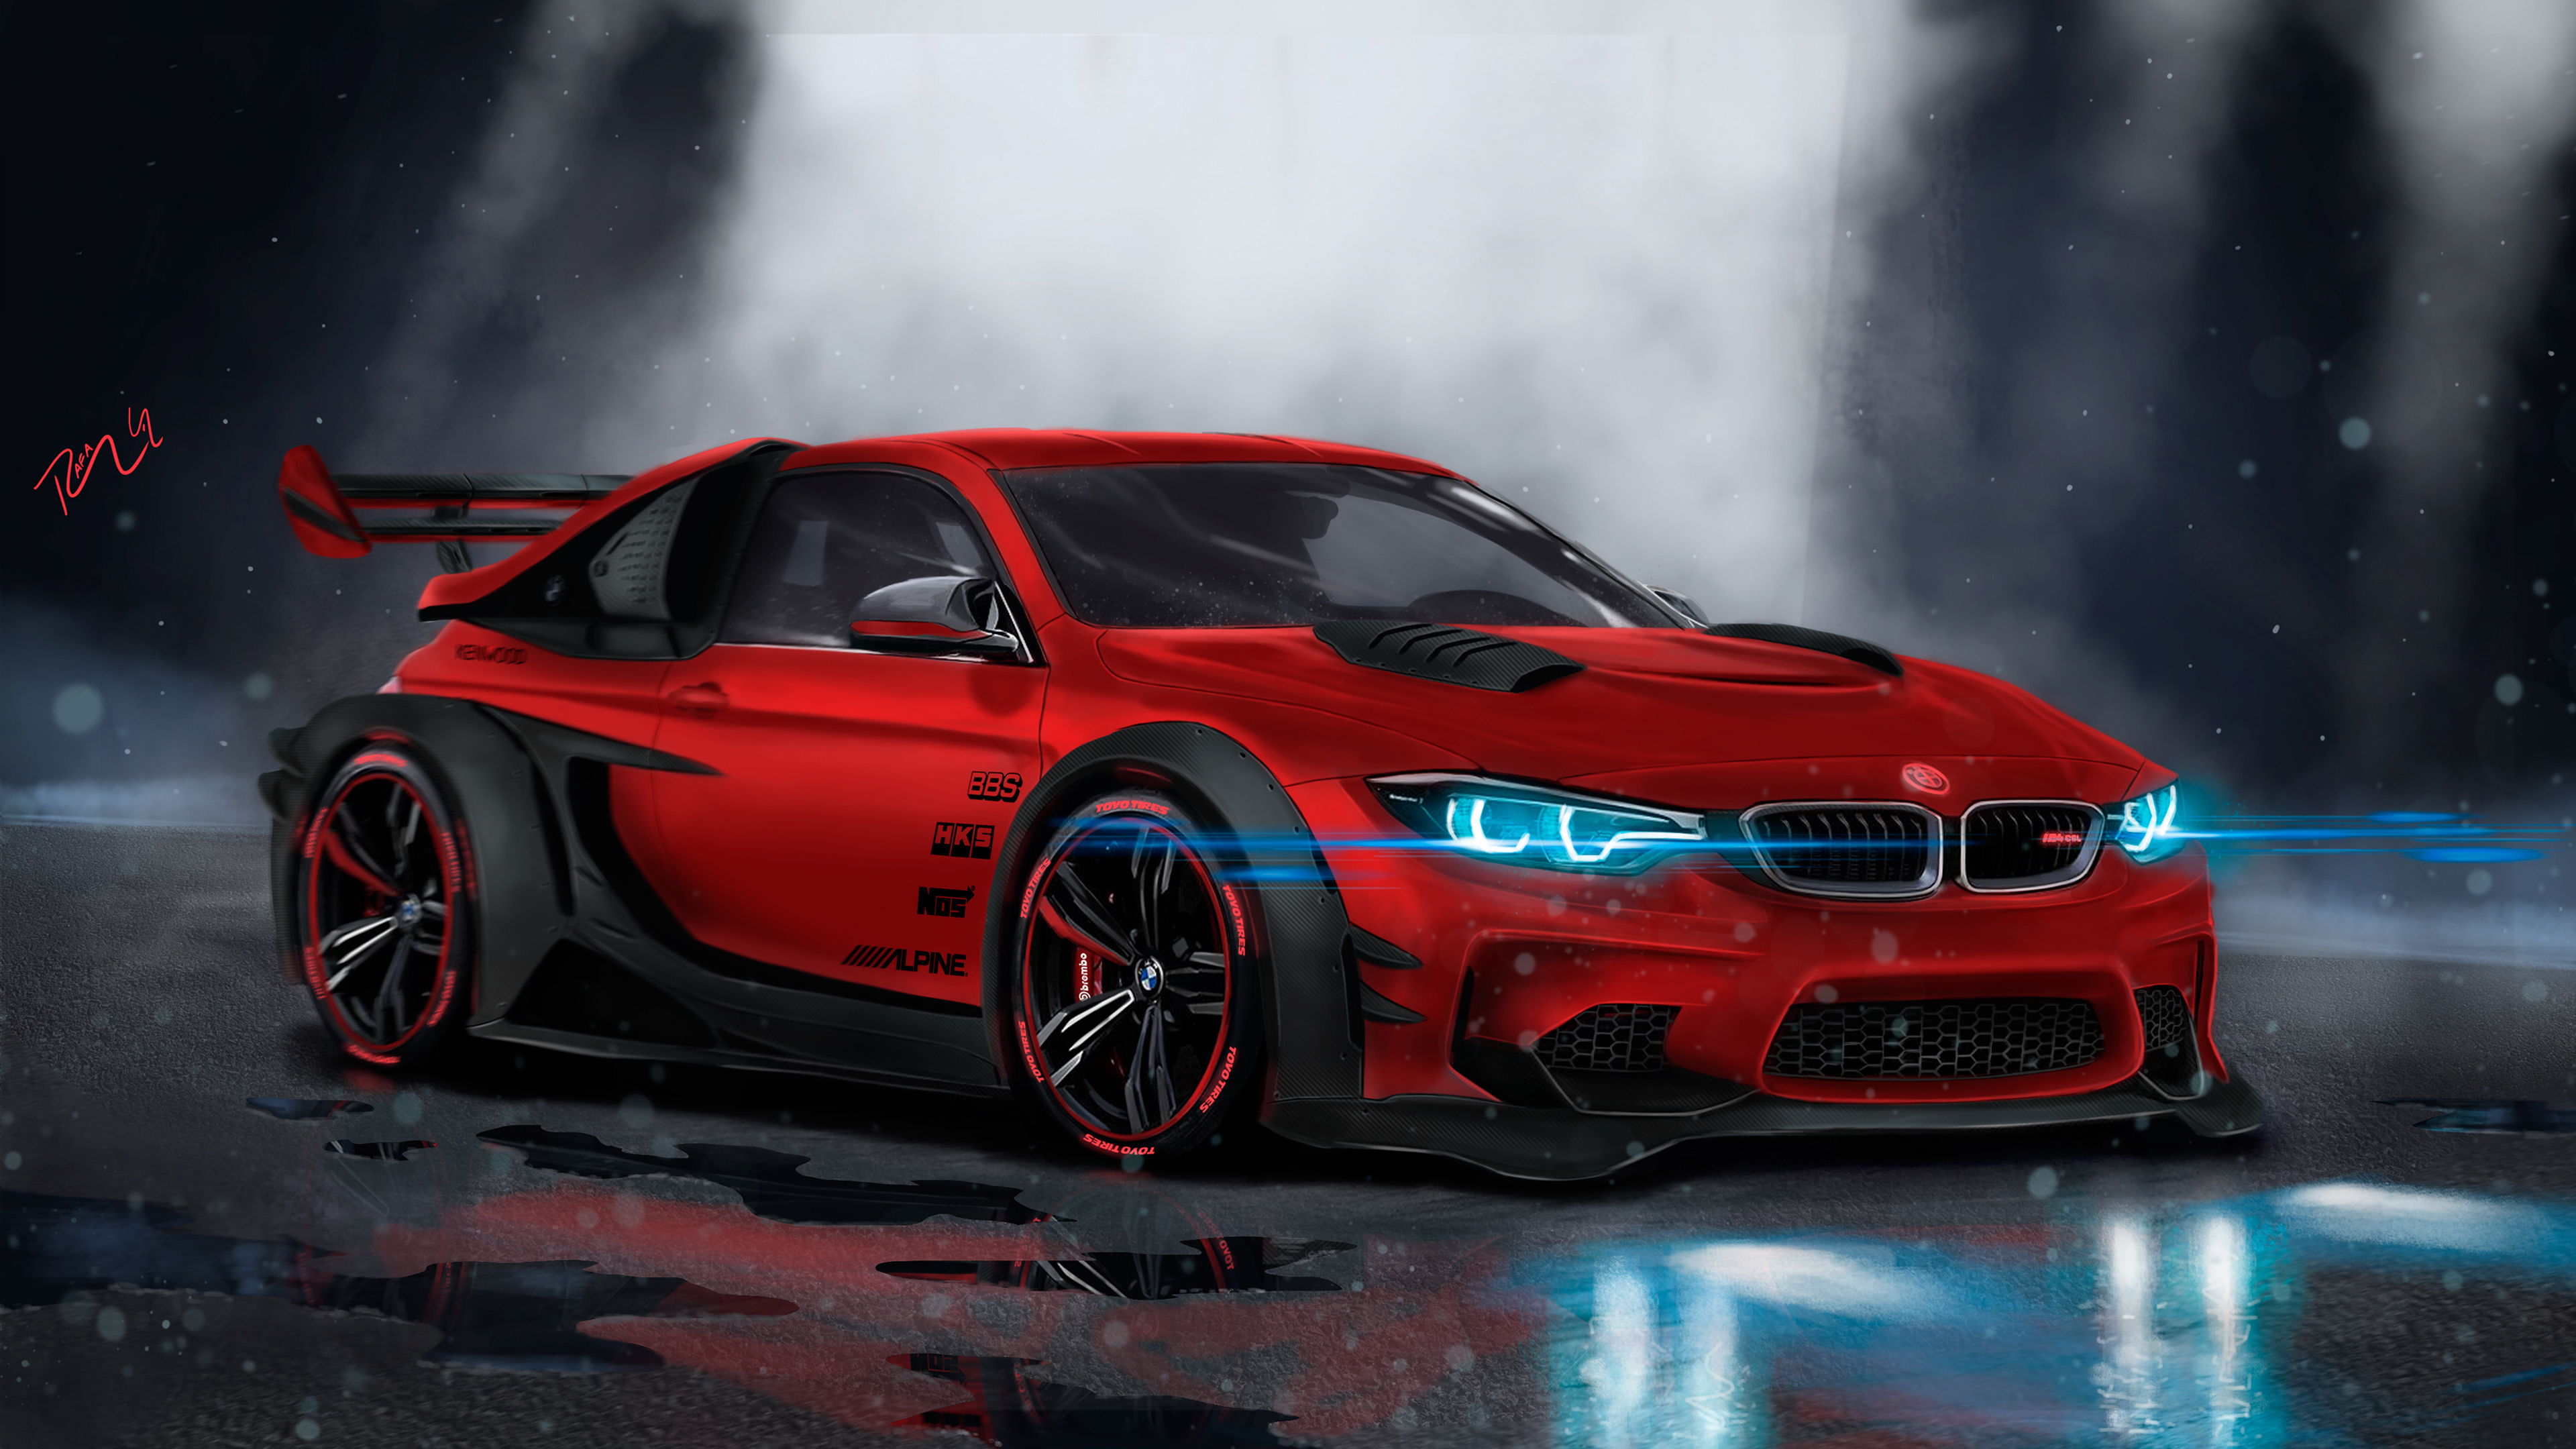 Bmw M4 Custom Cgi 4k Wallpaper Hd Car Wallpapers Id 9028